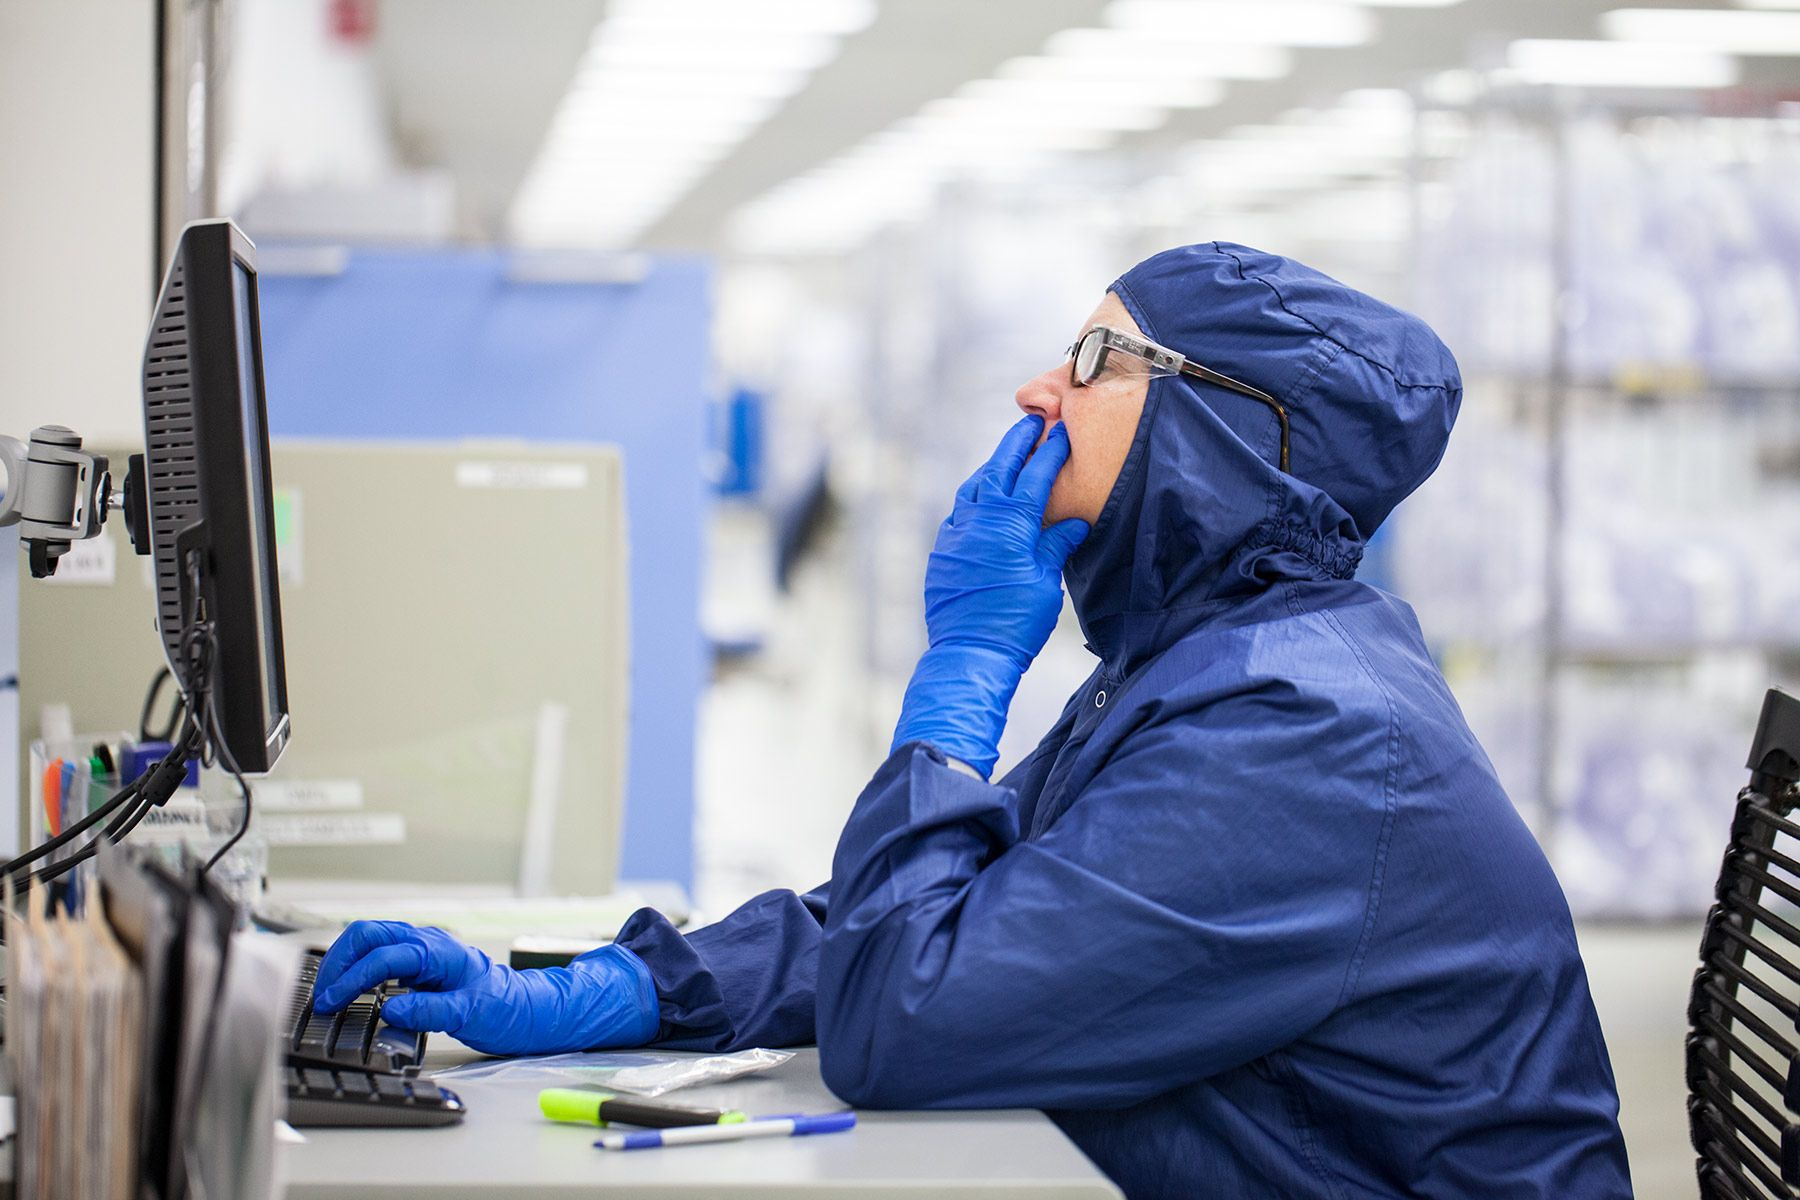 Portrait of a woman working in a high tech medical manufacturing facility.jpg